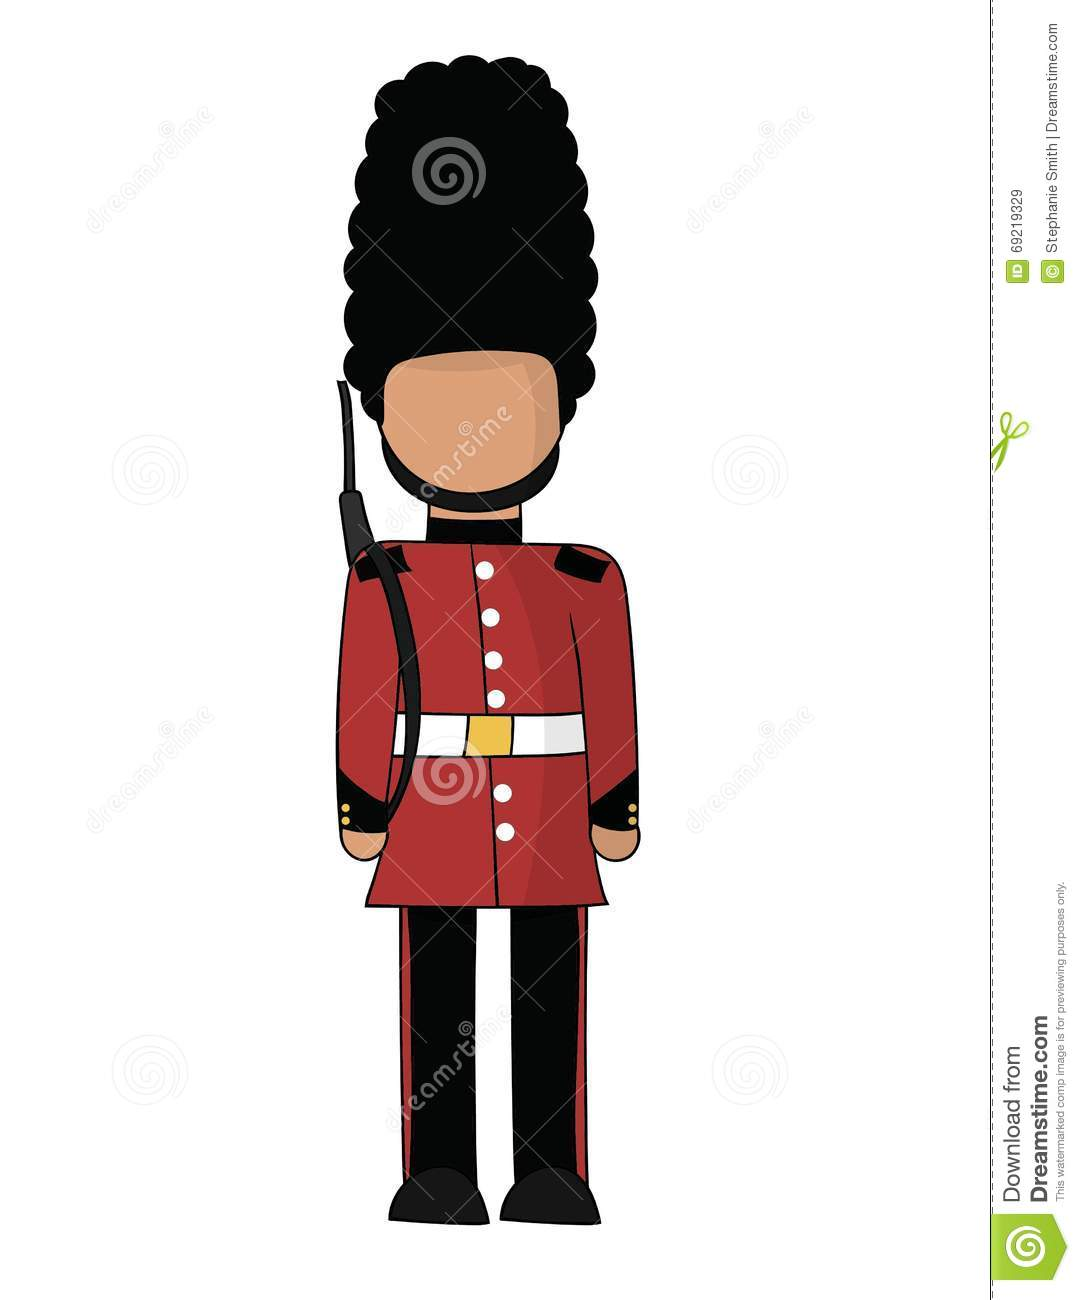 British Royal Guard in a red jacket and black hat. These types of ...